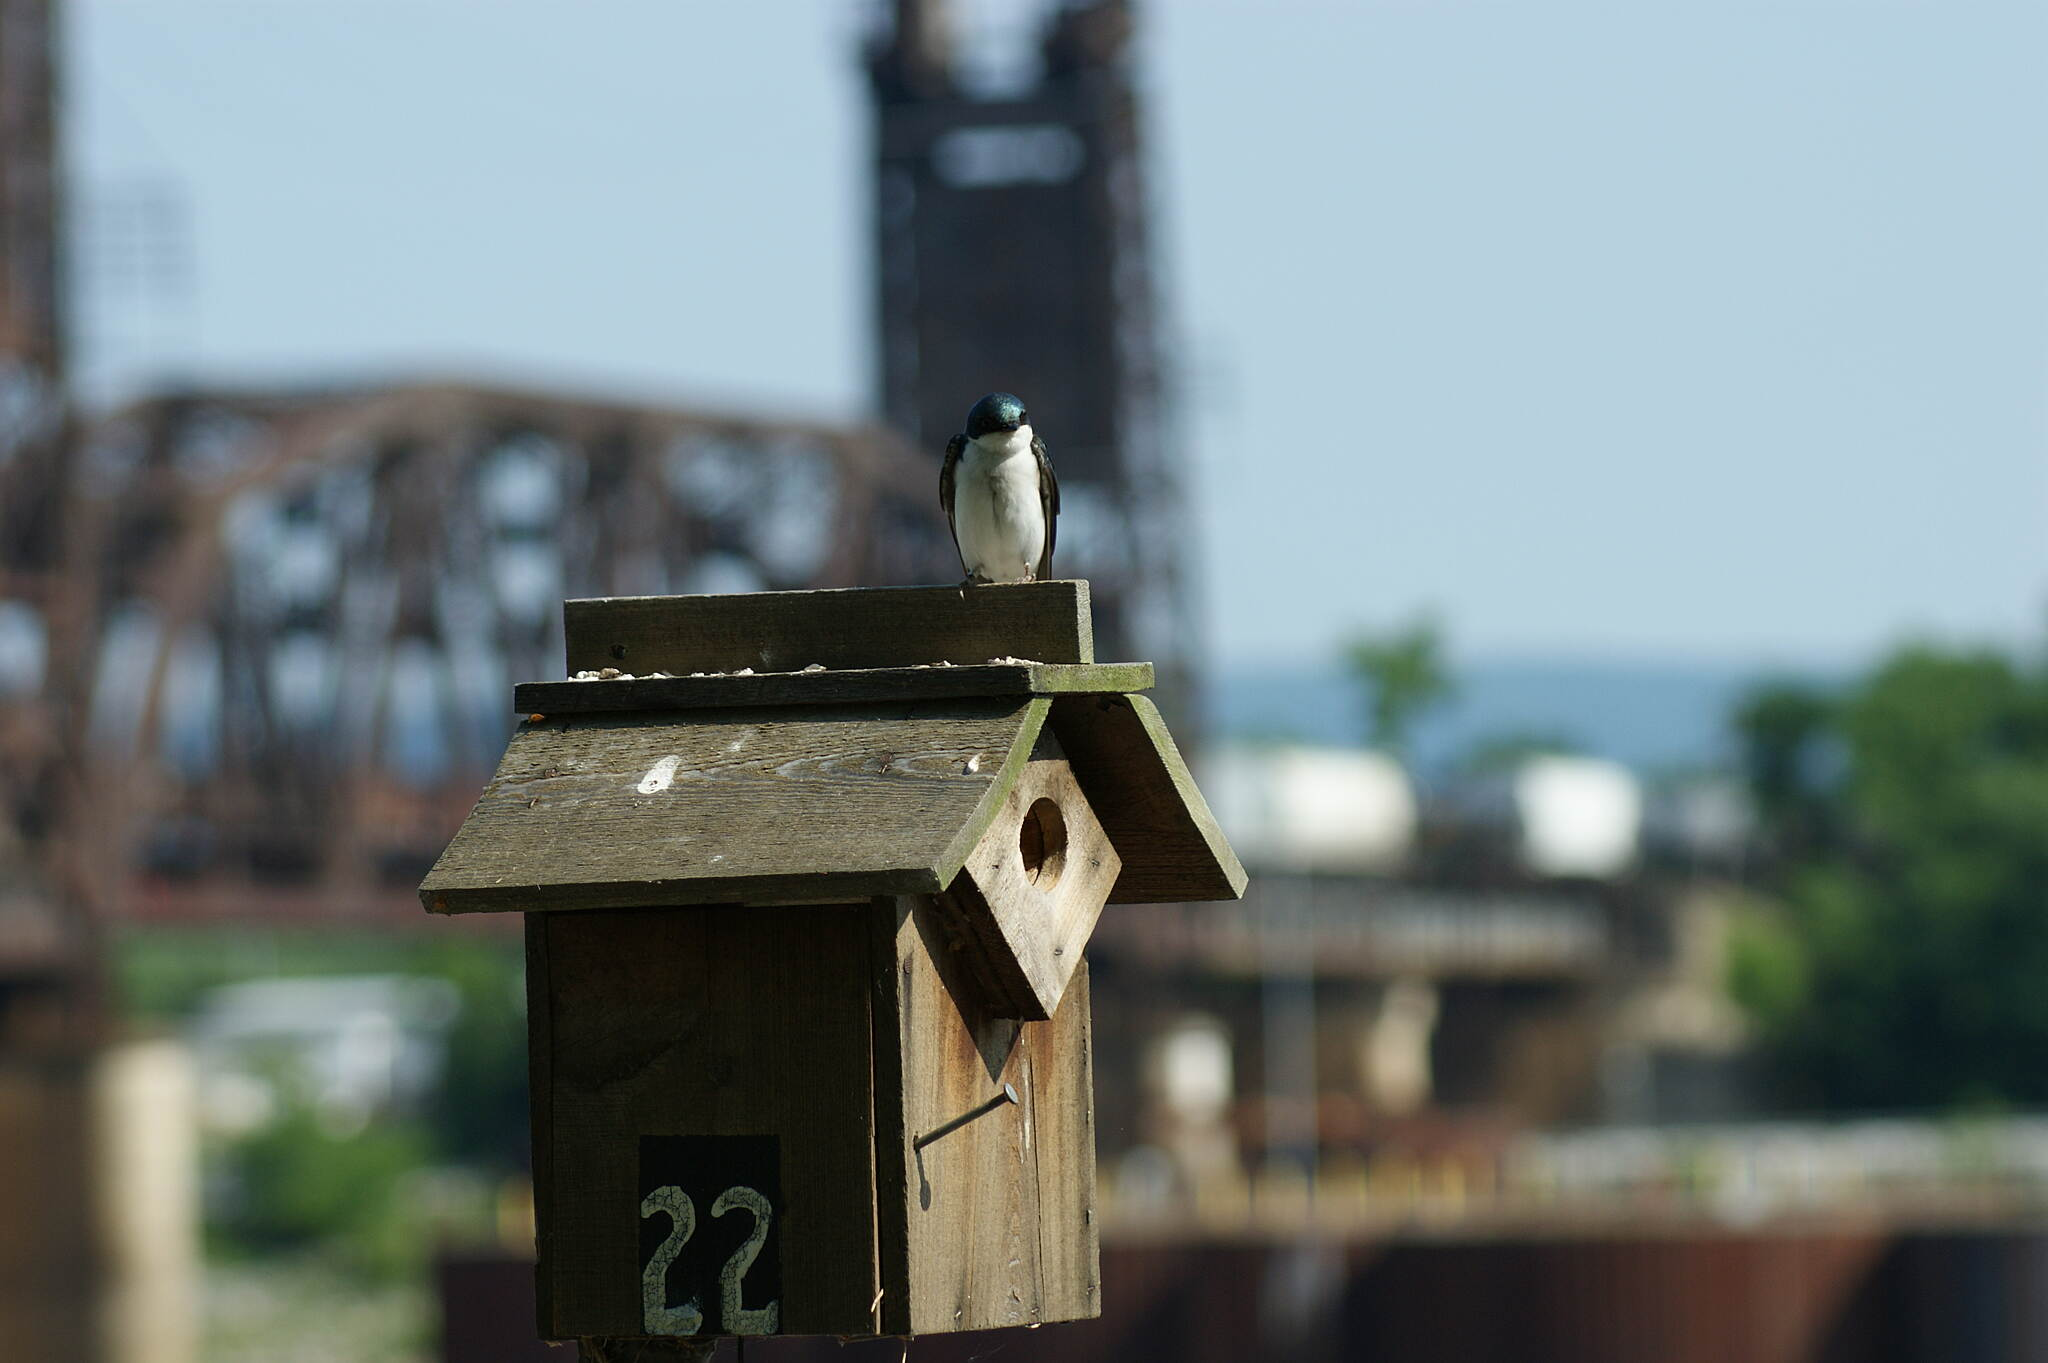 Chattanooga Riverwalk (Tennessee Riverpark) Tree Swallow near the Dam Tree Swallow near the Dam, House #22, with Train in the background.